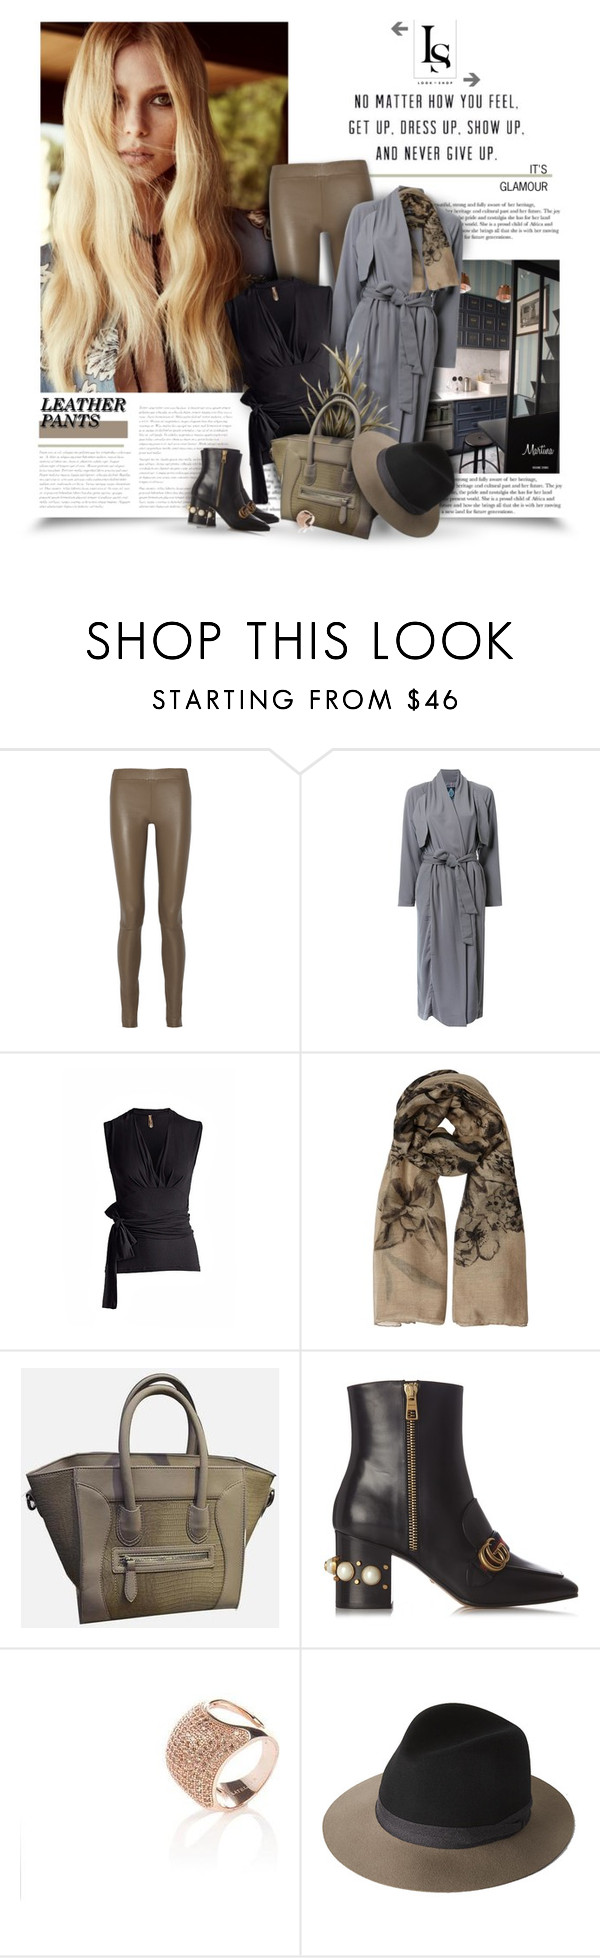 """""""Everyday Is A Second Chance"""" by thewondersoffashion ❤ liked on Polyvore featuring The Row, Guild Prime, Valentino, Gucci, rag & bone, TheRow, gucci, ragandbone, lookshop and guildprime"""